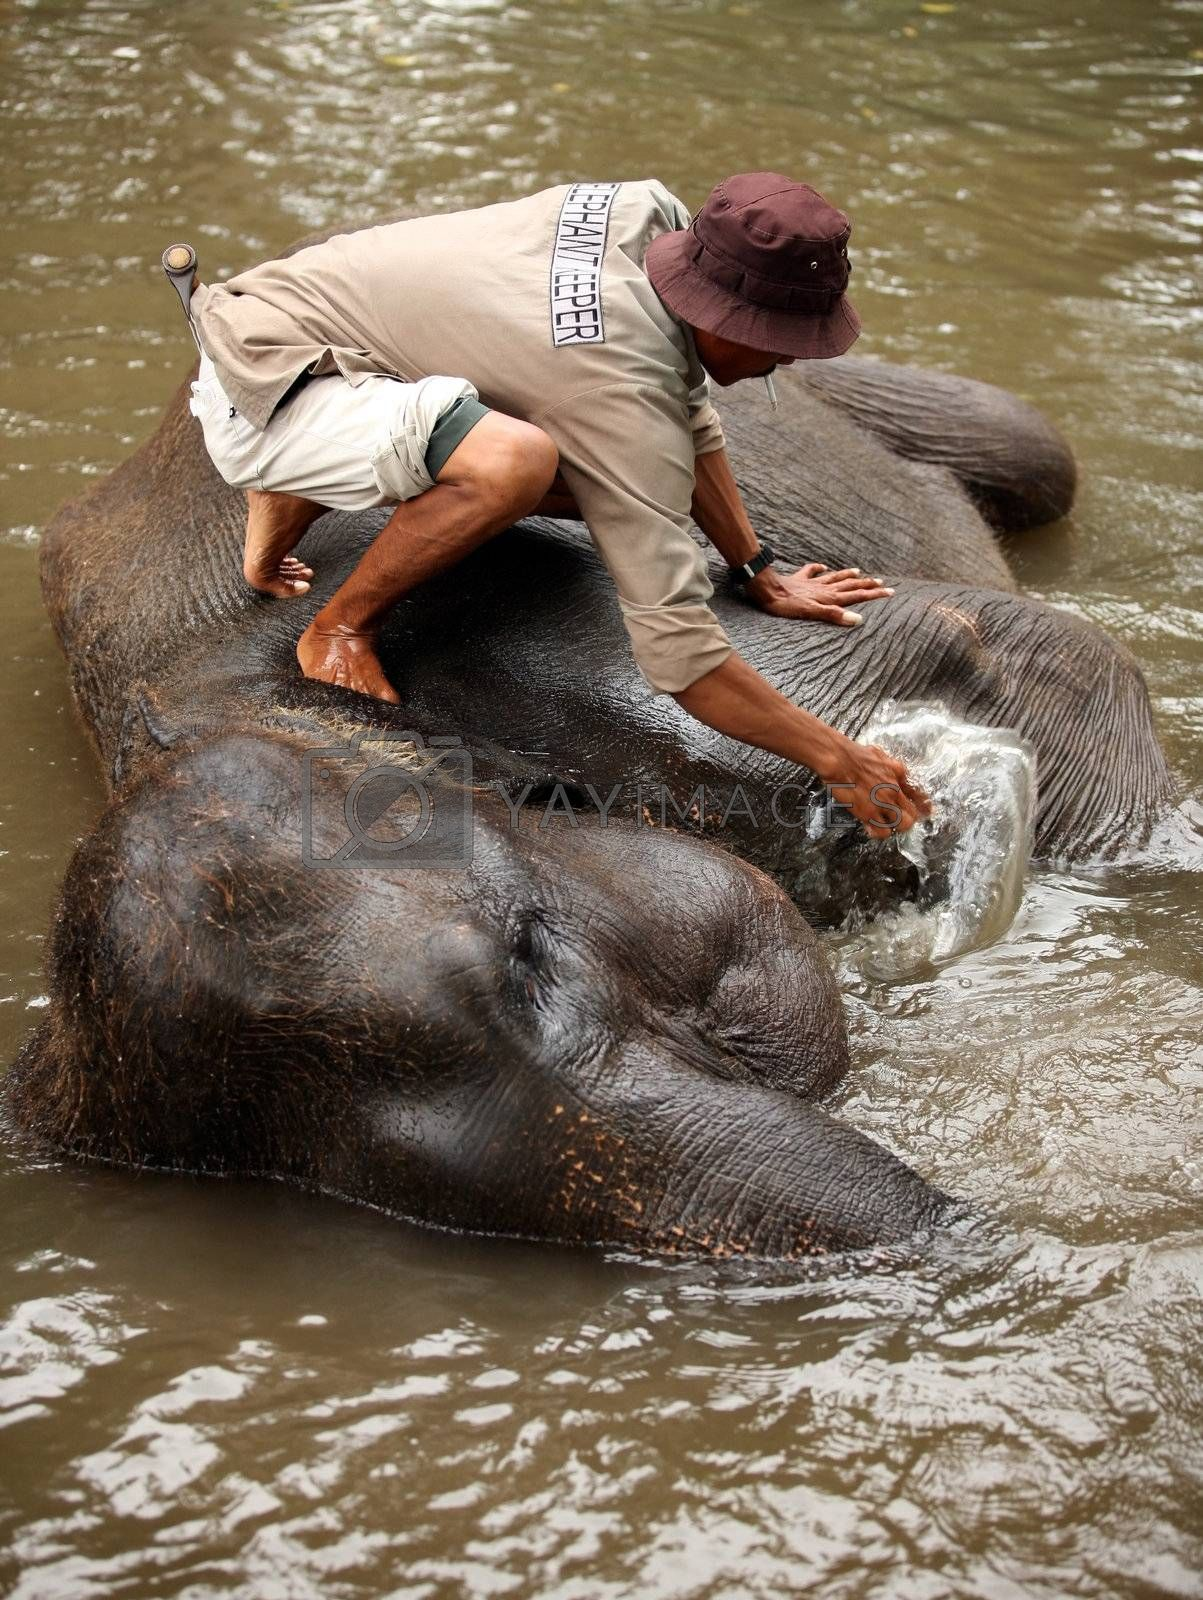 The man washes the elephant